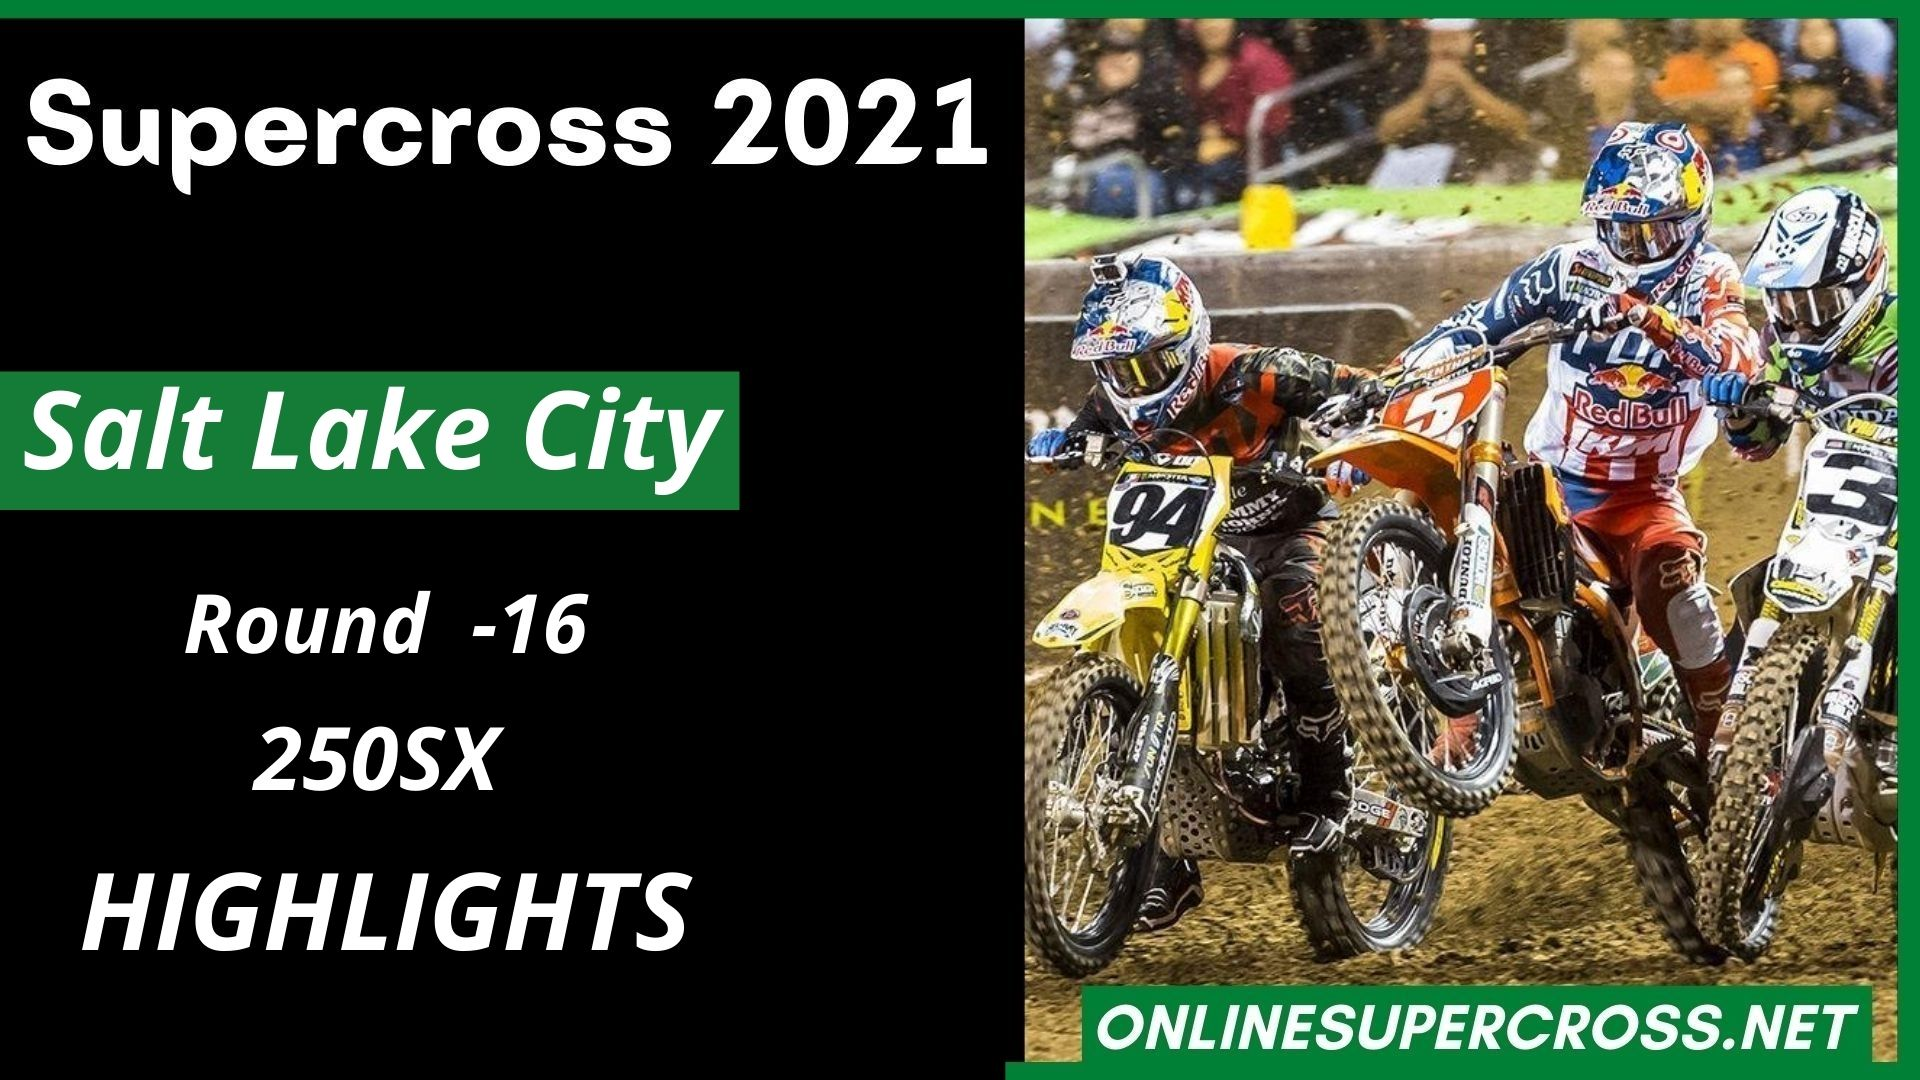 Salt Lake City Round 16 Supercross 250SX Highlights 2021